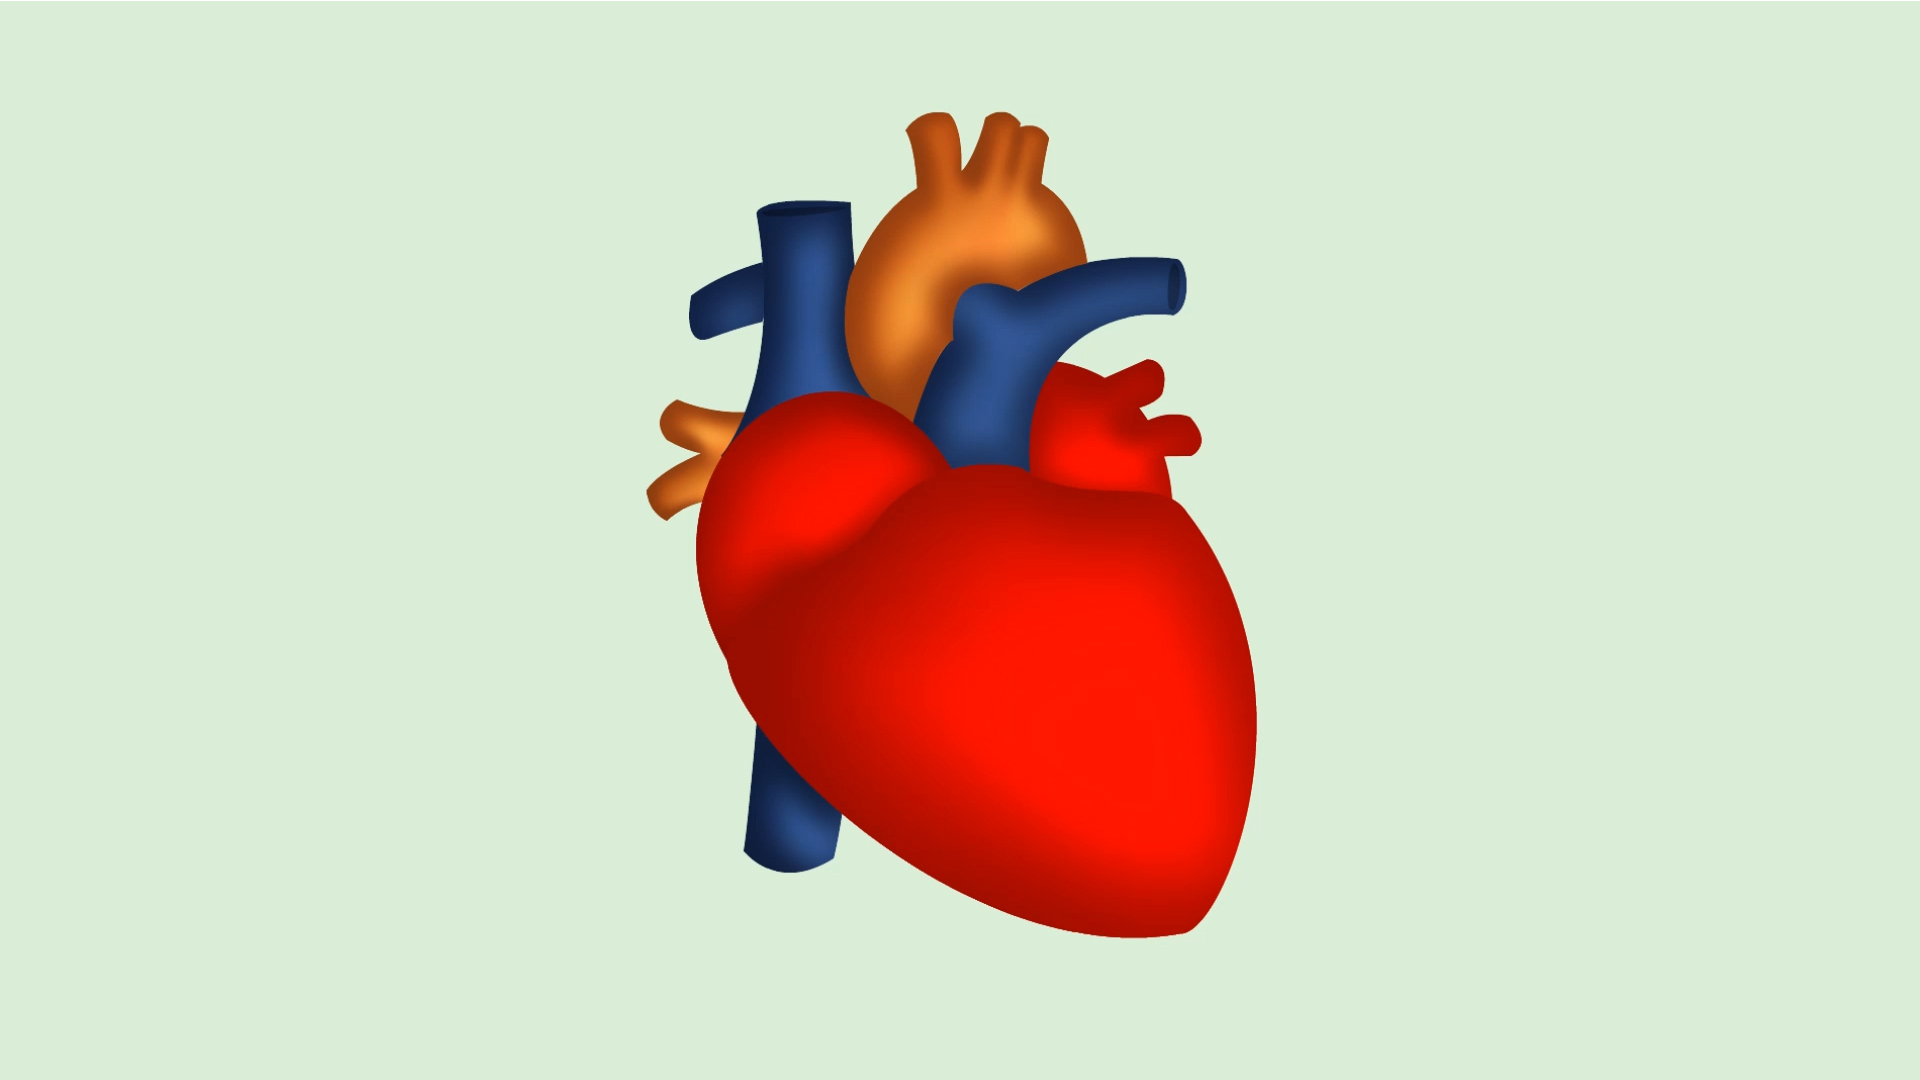 Whats inside the heart clipart clipart transparent download Real Heart Clipart | Free download best Real Heart Clipart on ... clipart transparent download